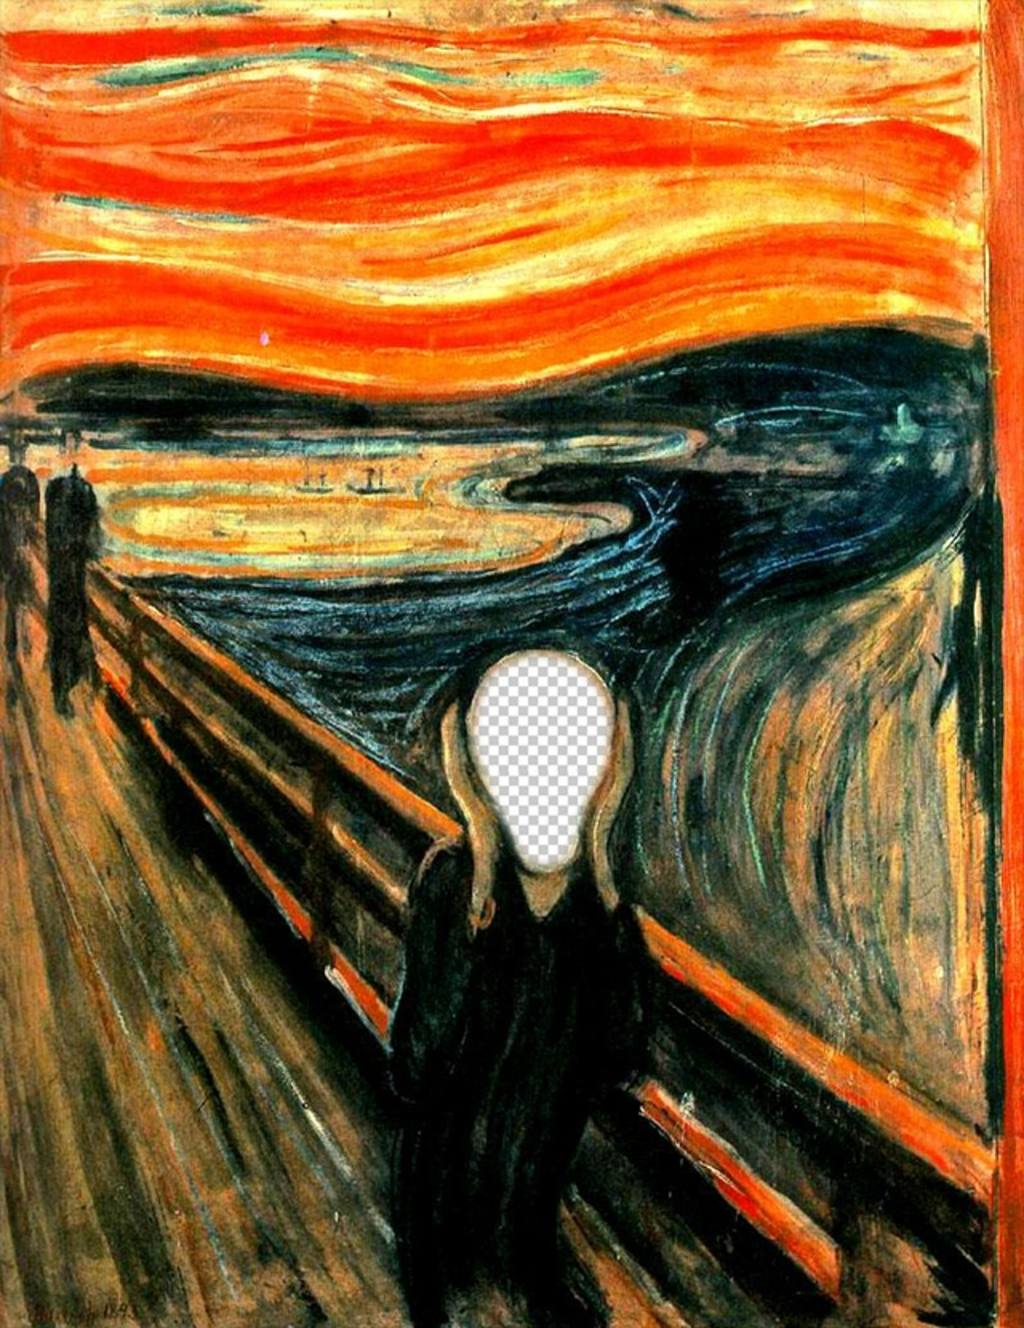 Photomontage of the picture The Scream by Munch to put the photo of your choice